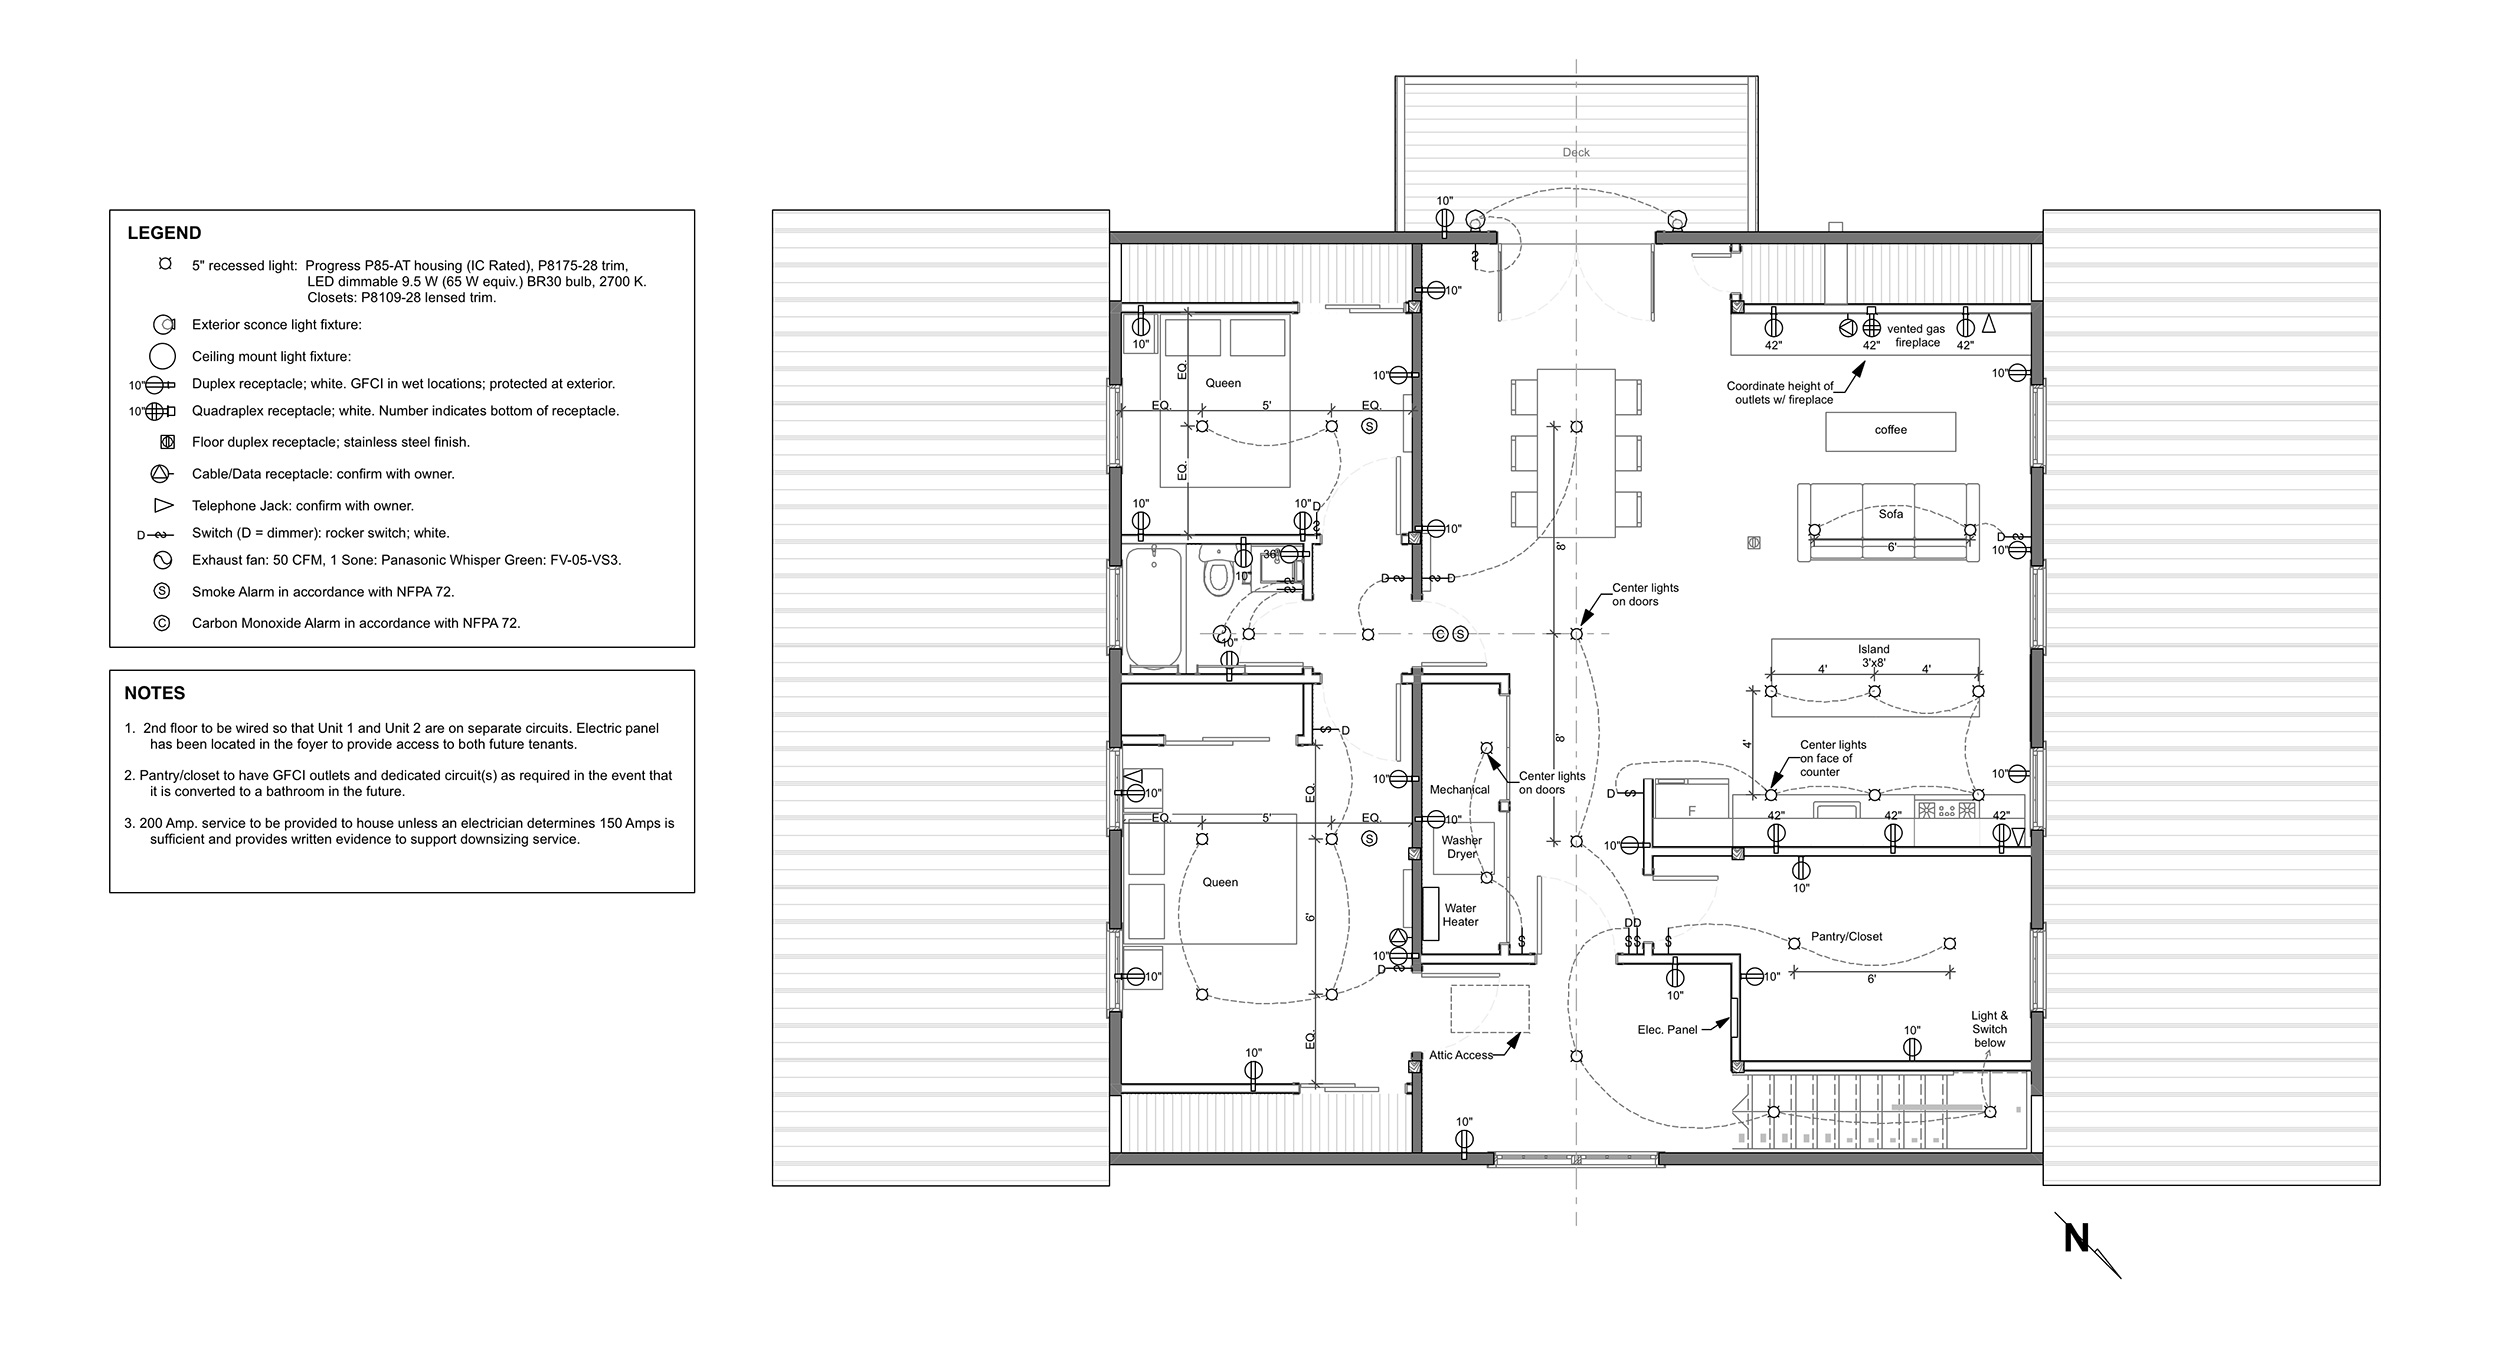 SECOND FLOOR POWER PLAN